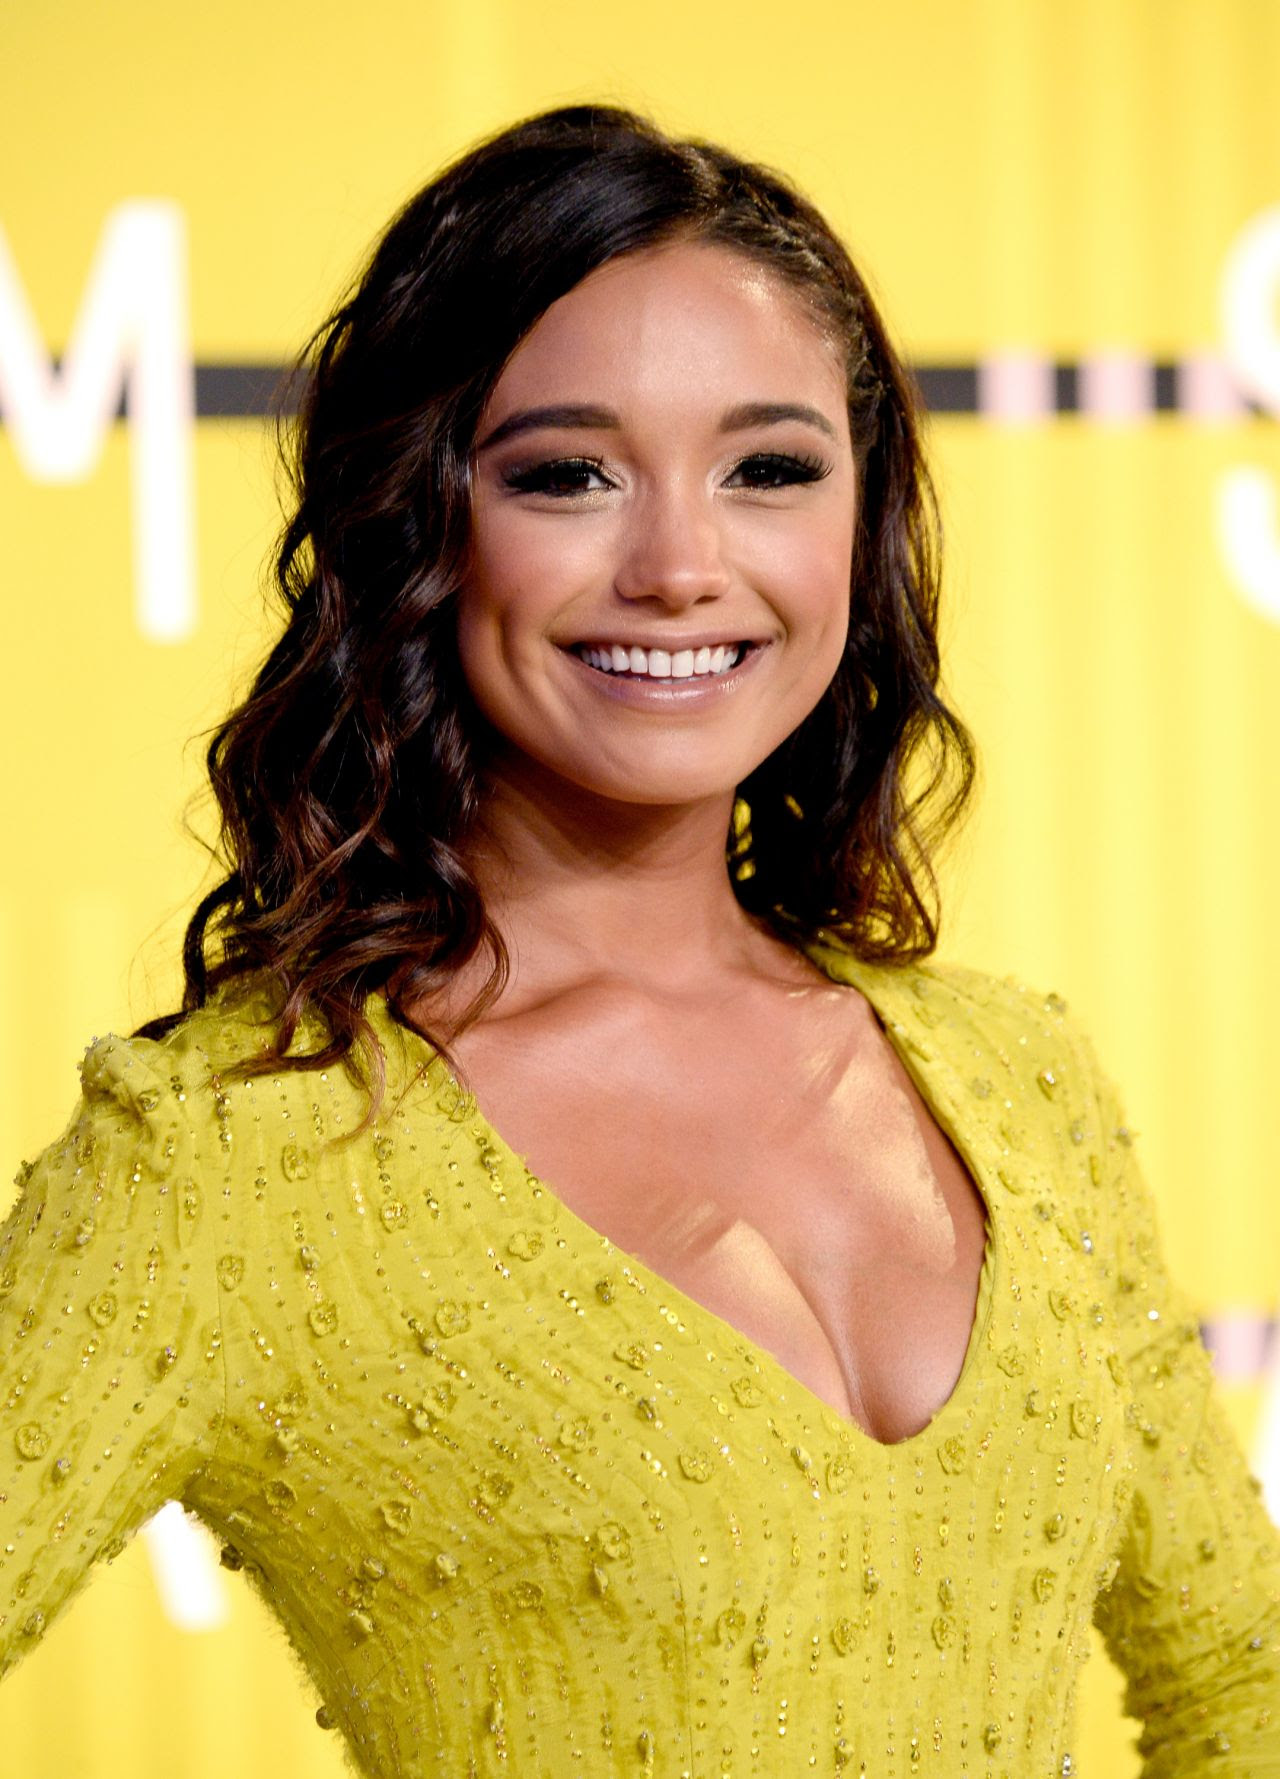 http://celebmafia.com/wp-content/uploads/2015/08/rachel-smith-2015-mtv-video-music-awards-at-microsoft-theater-in-los-angeles_8.jpg